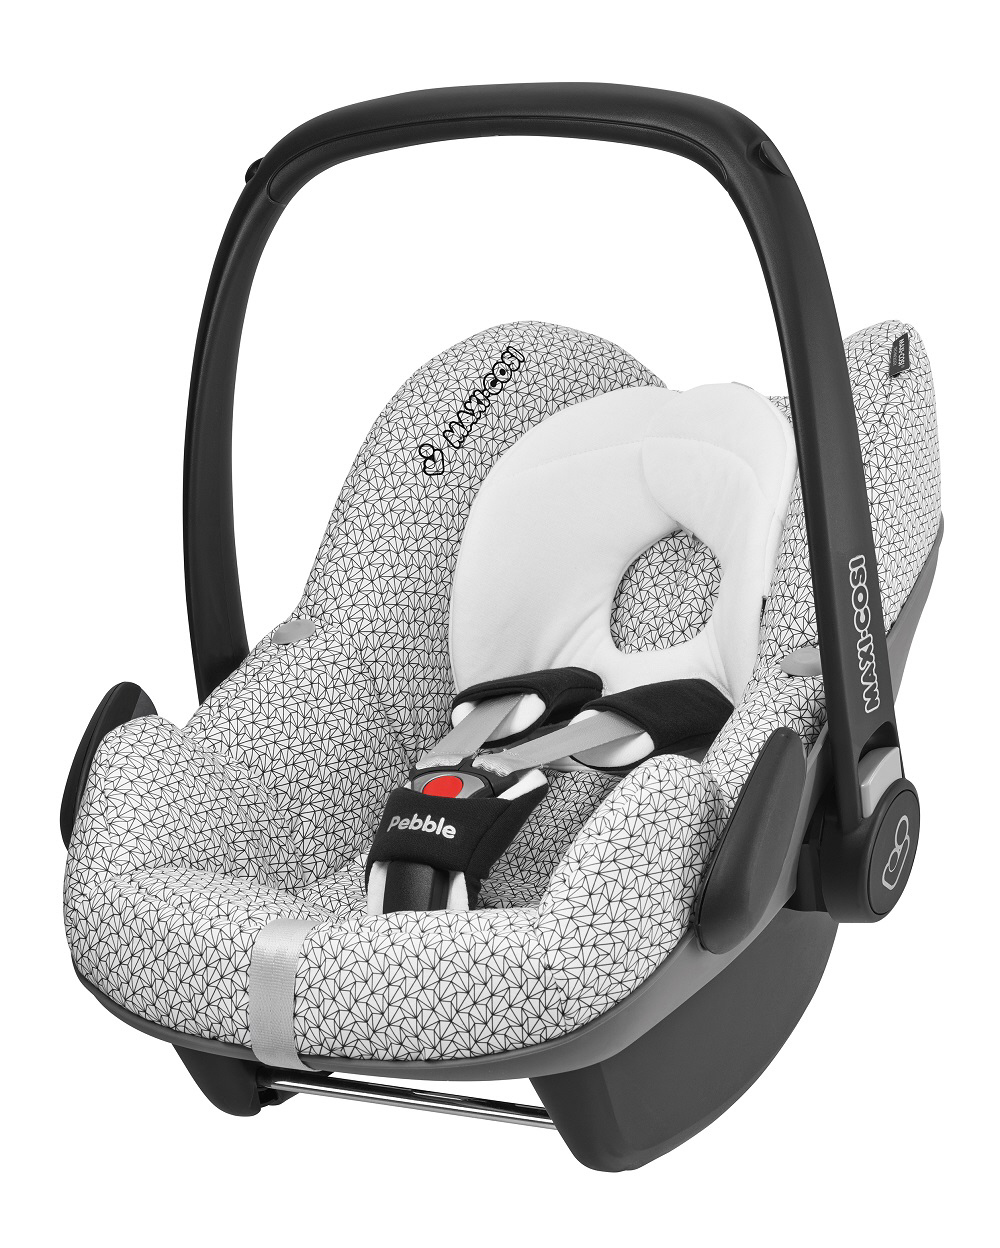 maxi cosi infant carrier pebble 2014 graphic crystal buy at kidsroom car seats. Black Bedroom Furniture Sets. Home Design Ideas